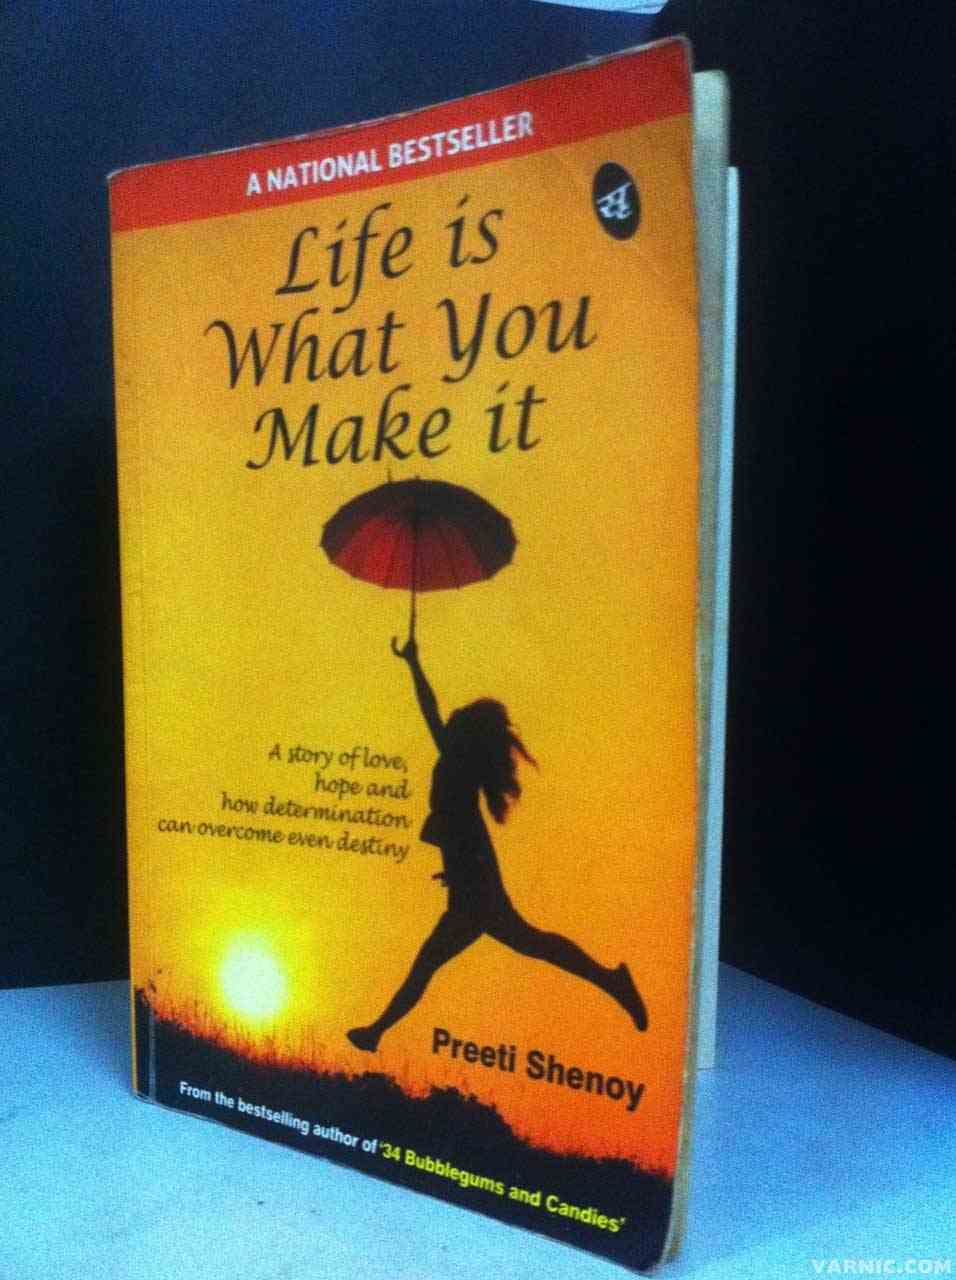 Life-is-what-you-make-it-Varnic-book-review1